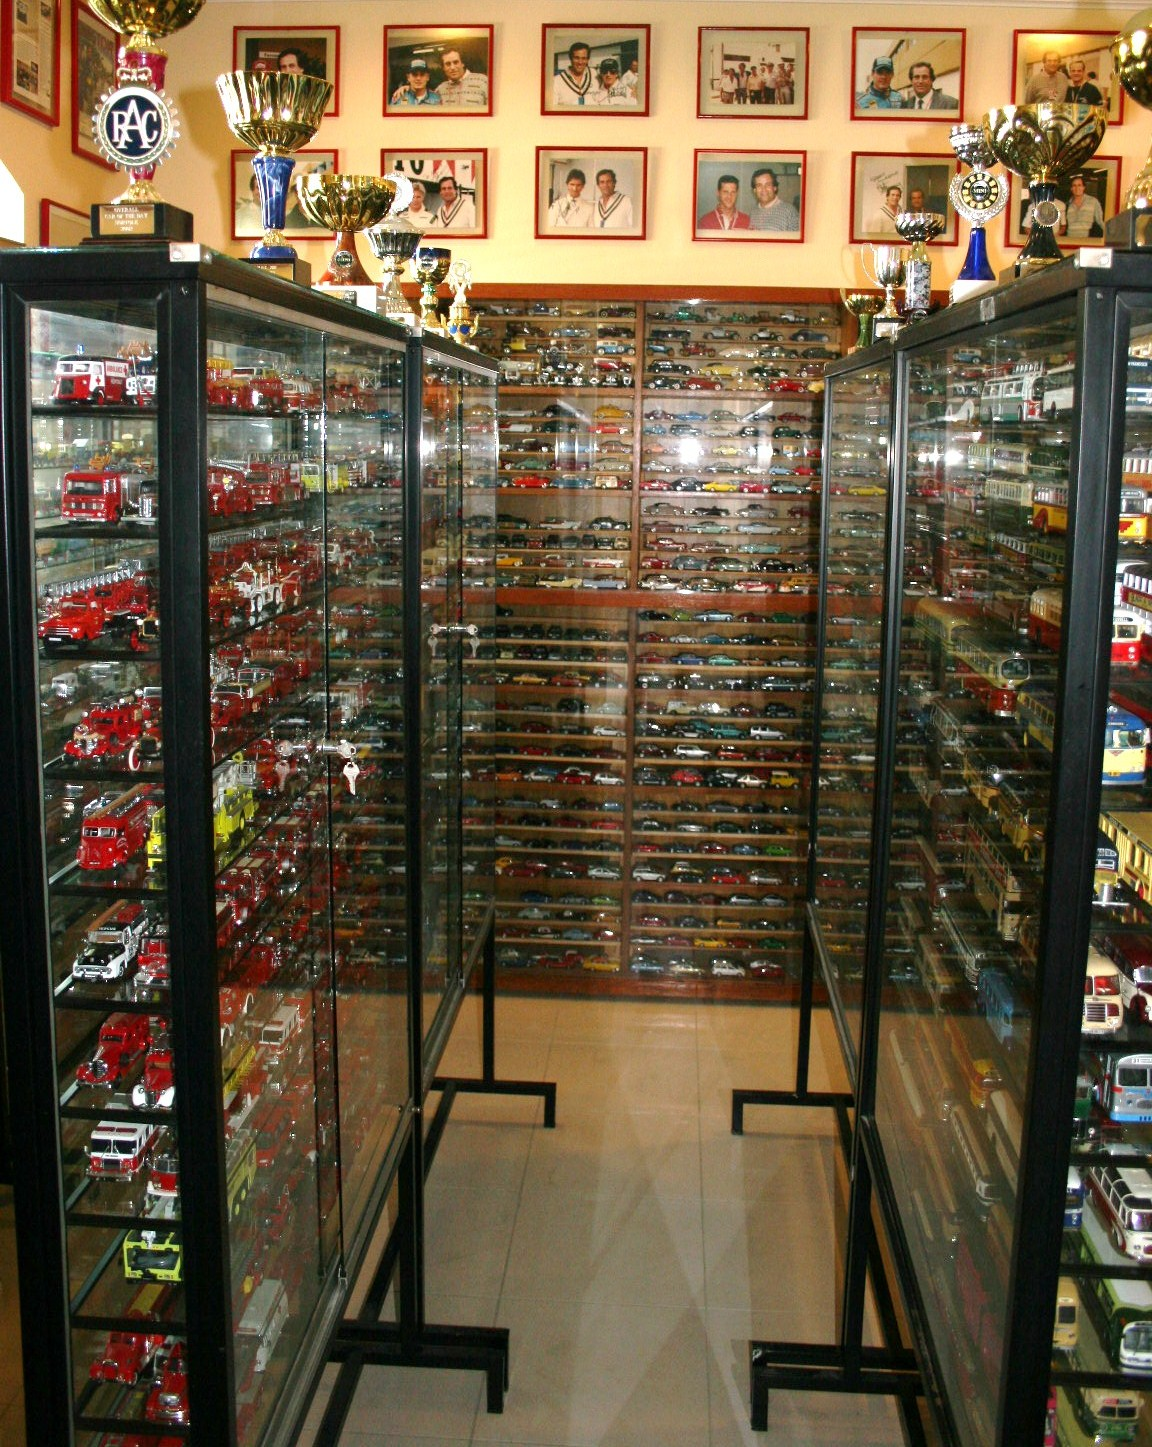 #AA7821 SERGIO GOLDVARG: MY SCALE MODEL CAR COLLECTION with 1152x1447 px of Best Glass Display Cabinets For Models 14471152 image @ avoidforclosure.info